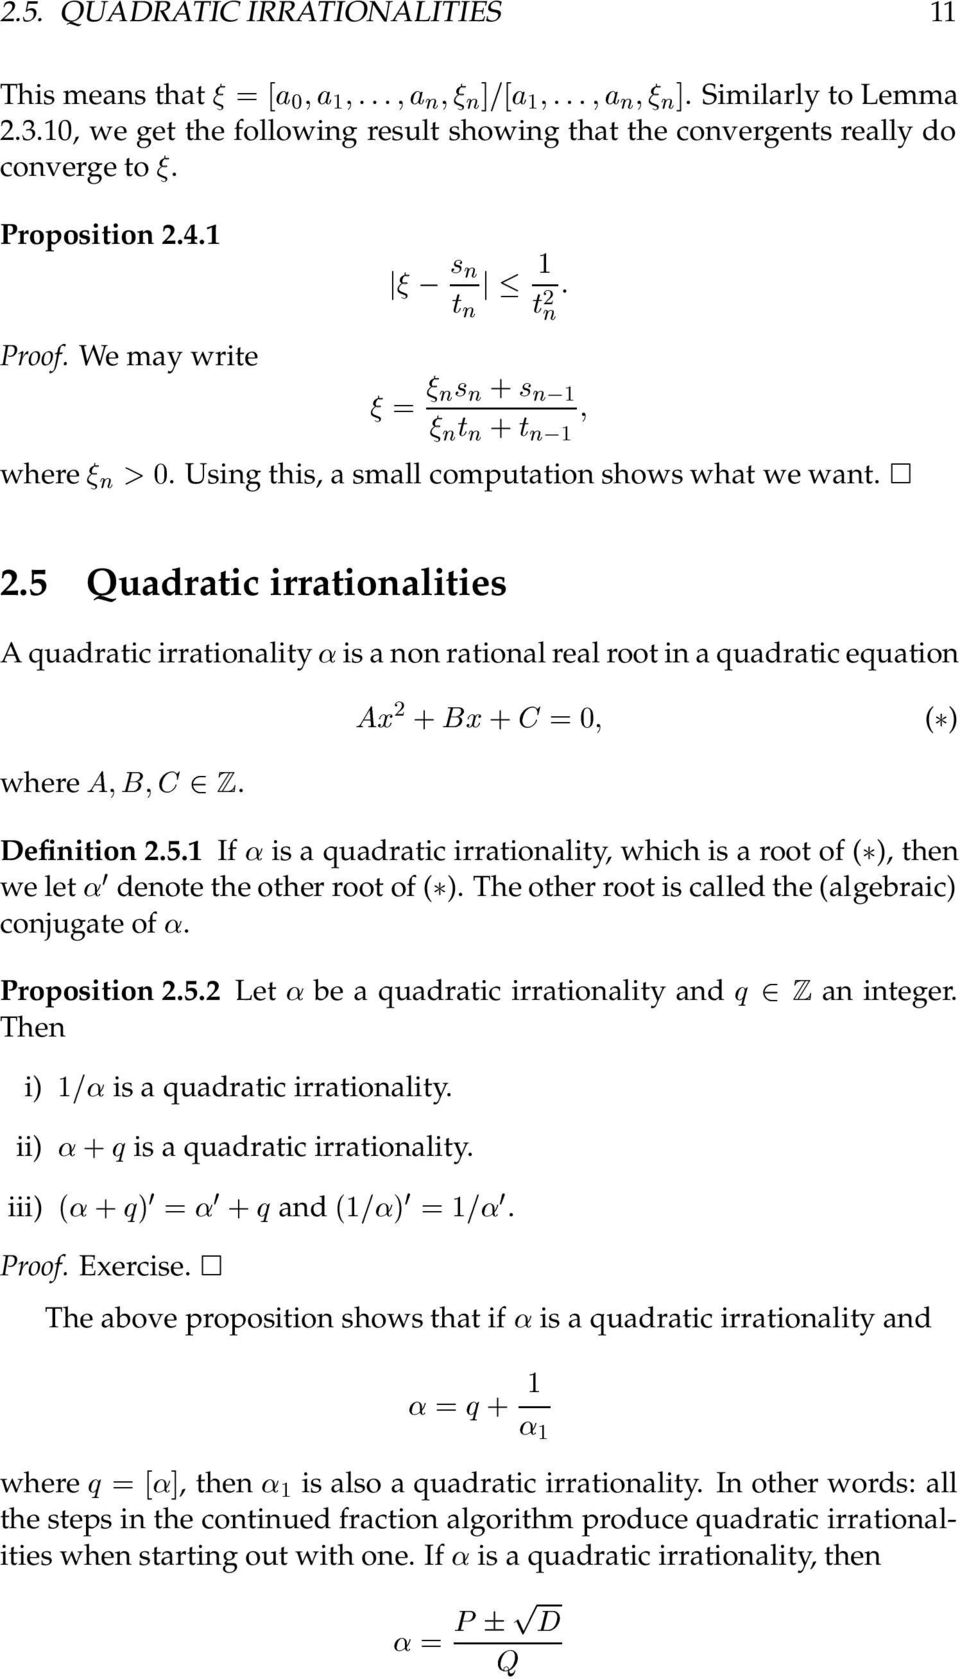 5 Quadratic irrationalities A quadratic irrationality «is a non rational real root in a quadratic equation where ¾. Ü ¾ Ü ¼ ( ) Definition 2.5.1 If «is a quadratic irrationality, which is a root of ( ), then we let «¼ denote the other root of ( ).